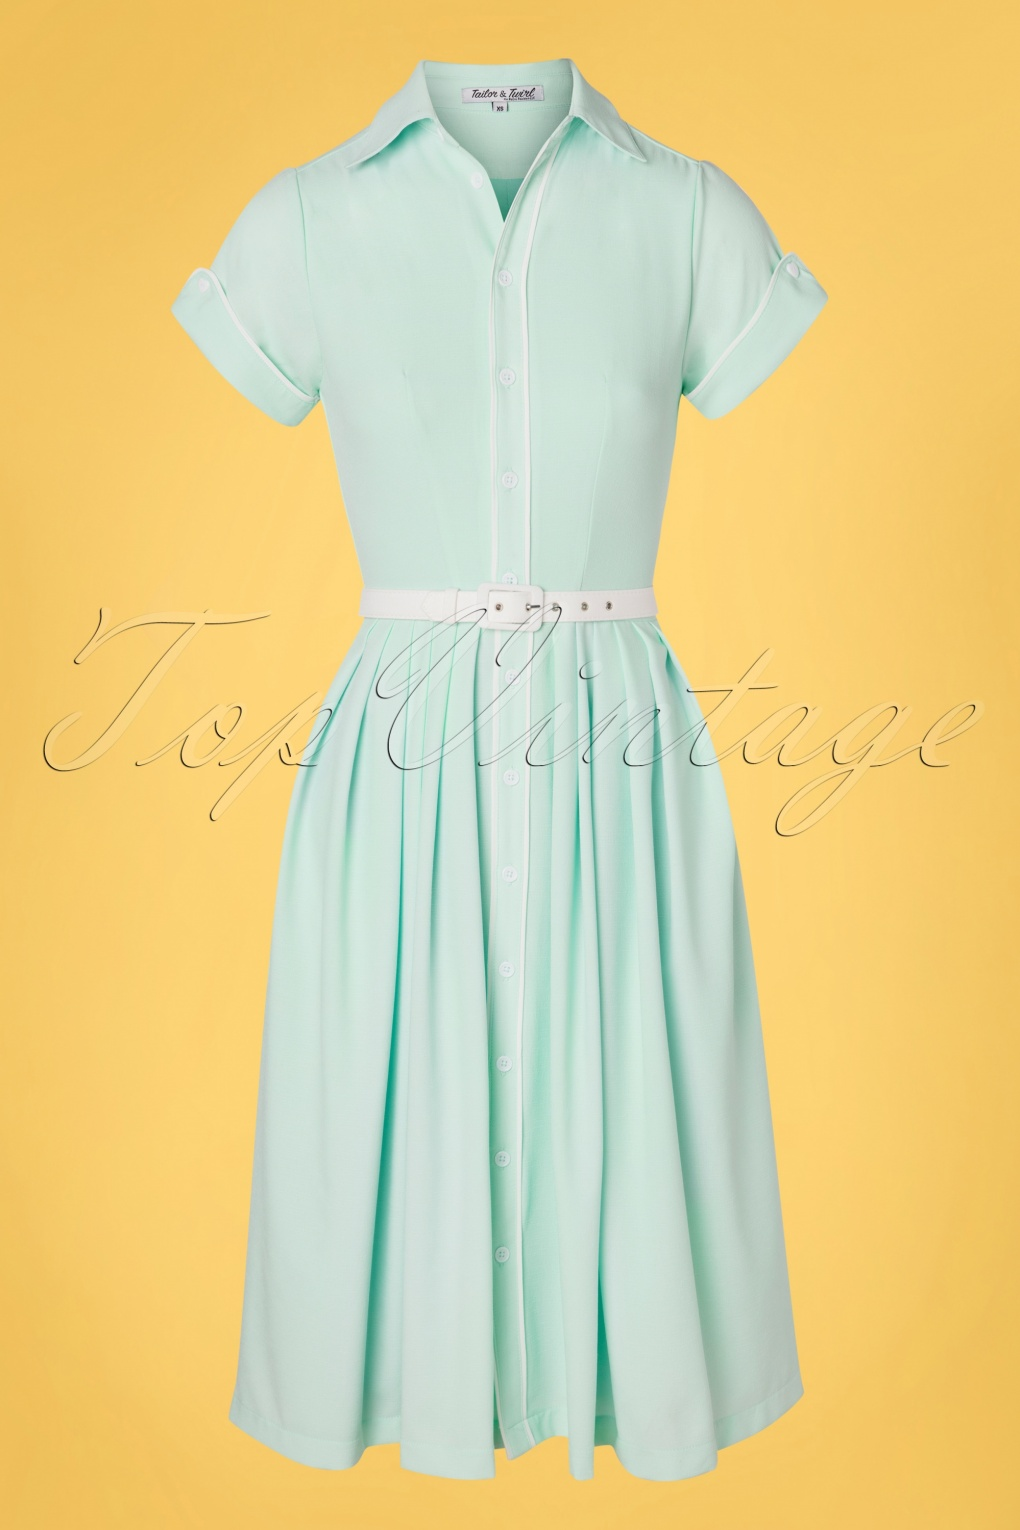 Fifties Dresses : 1950s Style Swing to Wiggle Dresses 50s Day Swing Dress in Sky Blue £102.17 AT vintagedancer.com